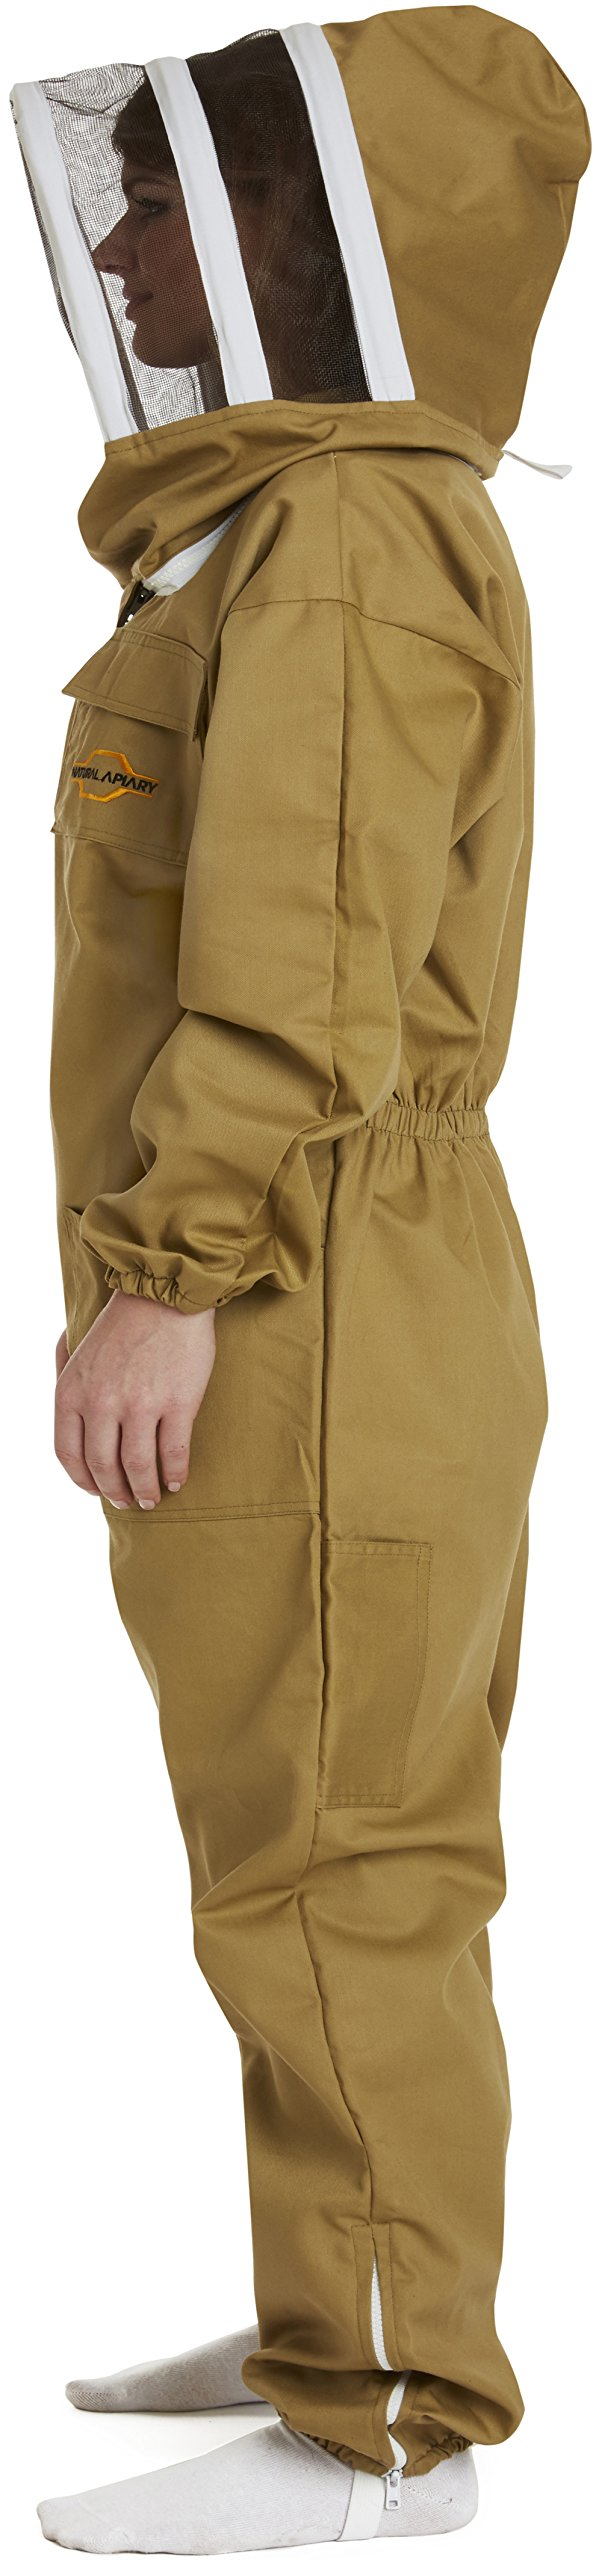 NATURAL APIARY - Apiarist Beekeeping Suit - Khaki - (All-in-One) - Fencing Veil - Total Protection for Professional & Beginner Beekeepers - X Large by Natural Apiary (Image #7)